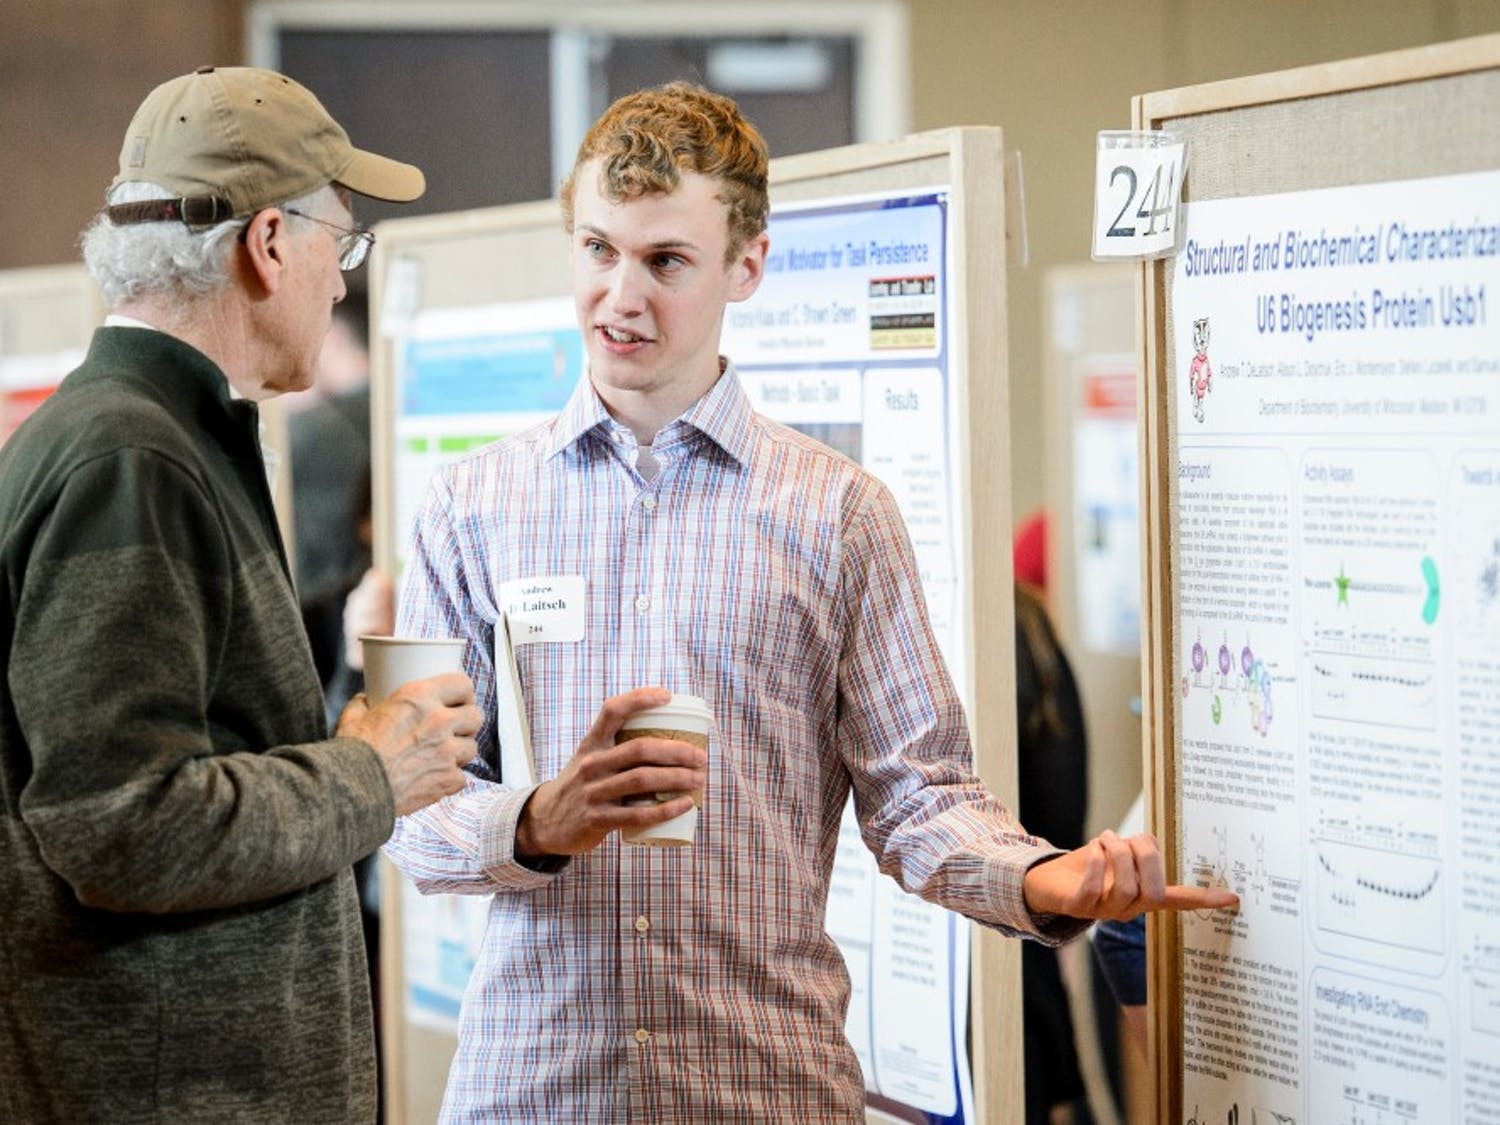 Andrew DeLaitsch presents his research project to attendees at the Undergraduate Symposium hosted in Varsity Hall at Union South at the University of Wisconsin-Madison on April 13, 2017. The annual event showcases student-led research, creative endeavors and service-learning projects. (Photo by Bryce Richter / UW-Madison)